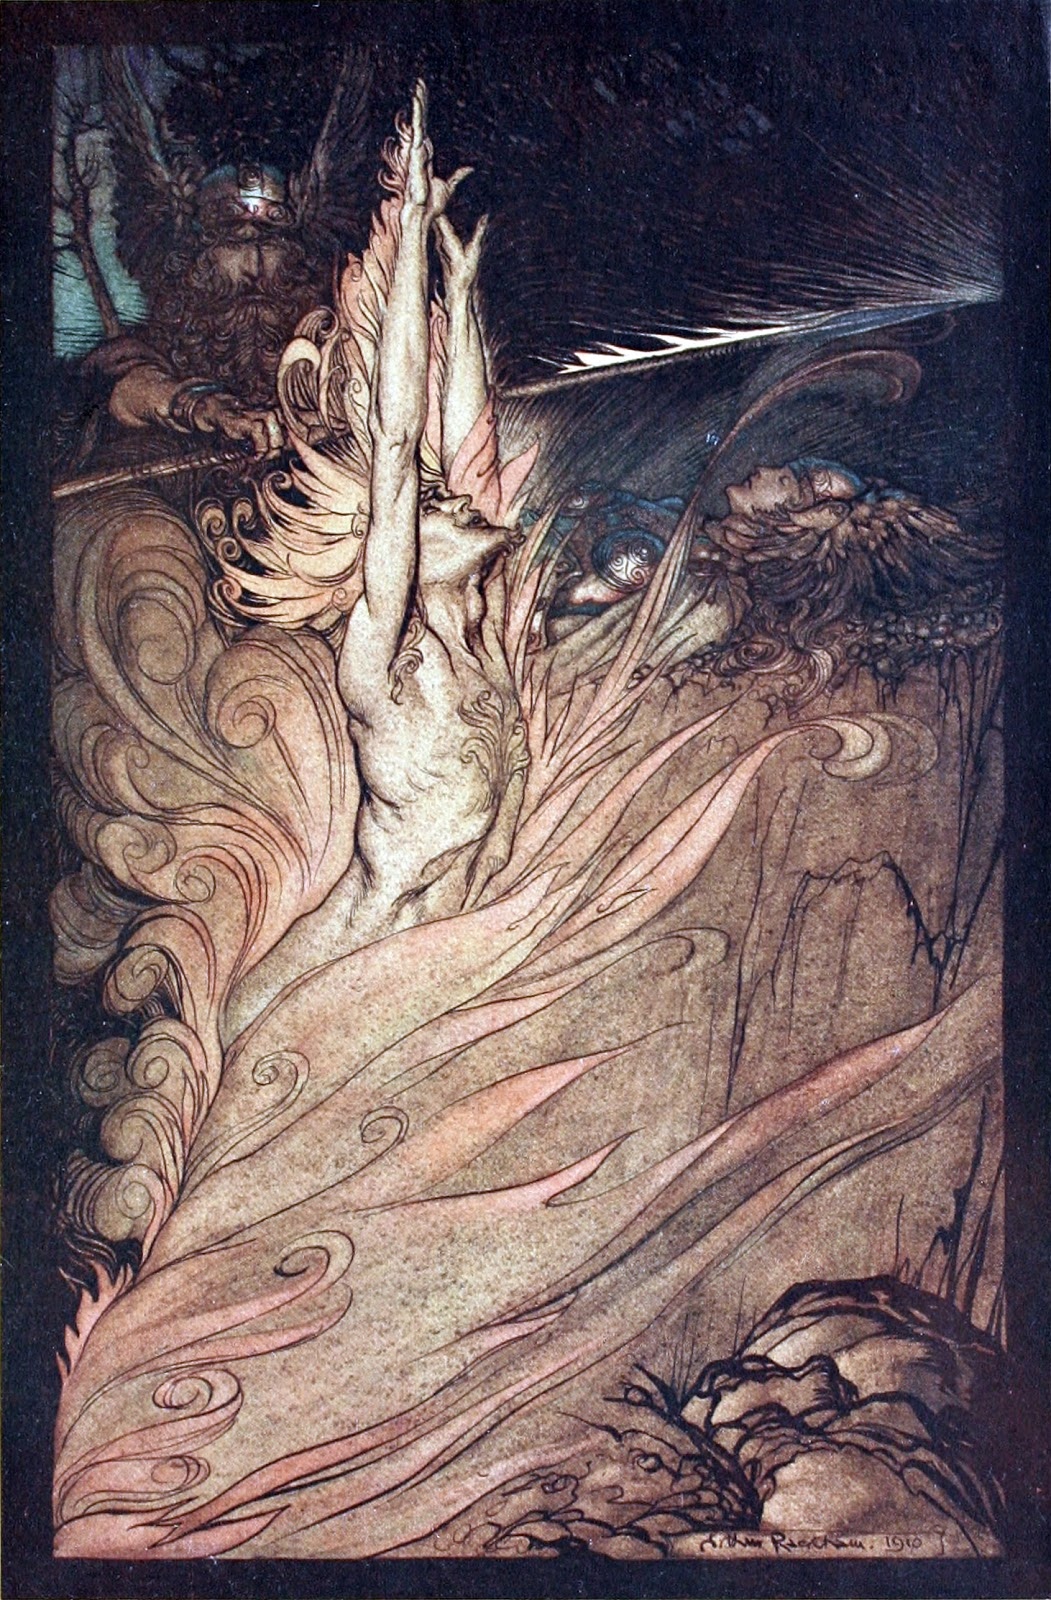 Loki Appear flickering fire Encircle the rock with thy flame Loge Appear Arthur Rackham painting illustration 1910 The Rhinegold and the Valkyrie Richard Wagner cycle ring of the nibelung nibelungen rheingold walkure